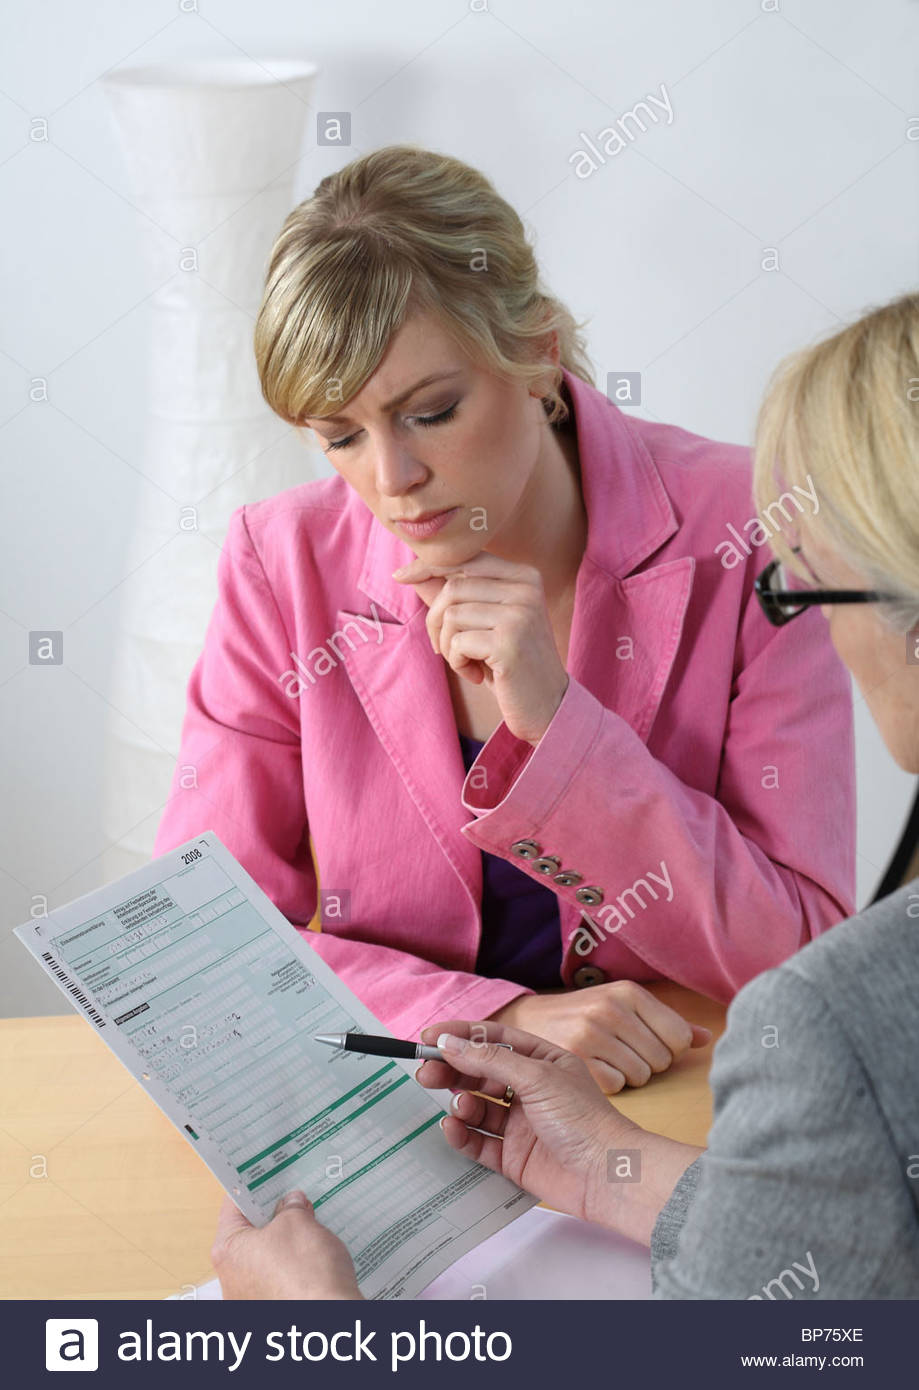 women sitting on table discussing holding blank form Stock Photo